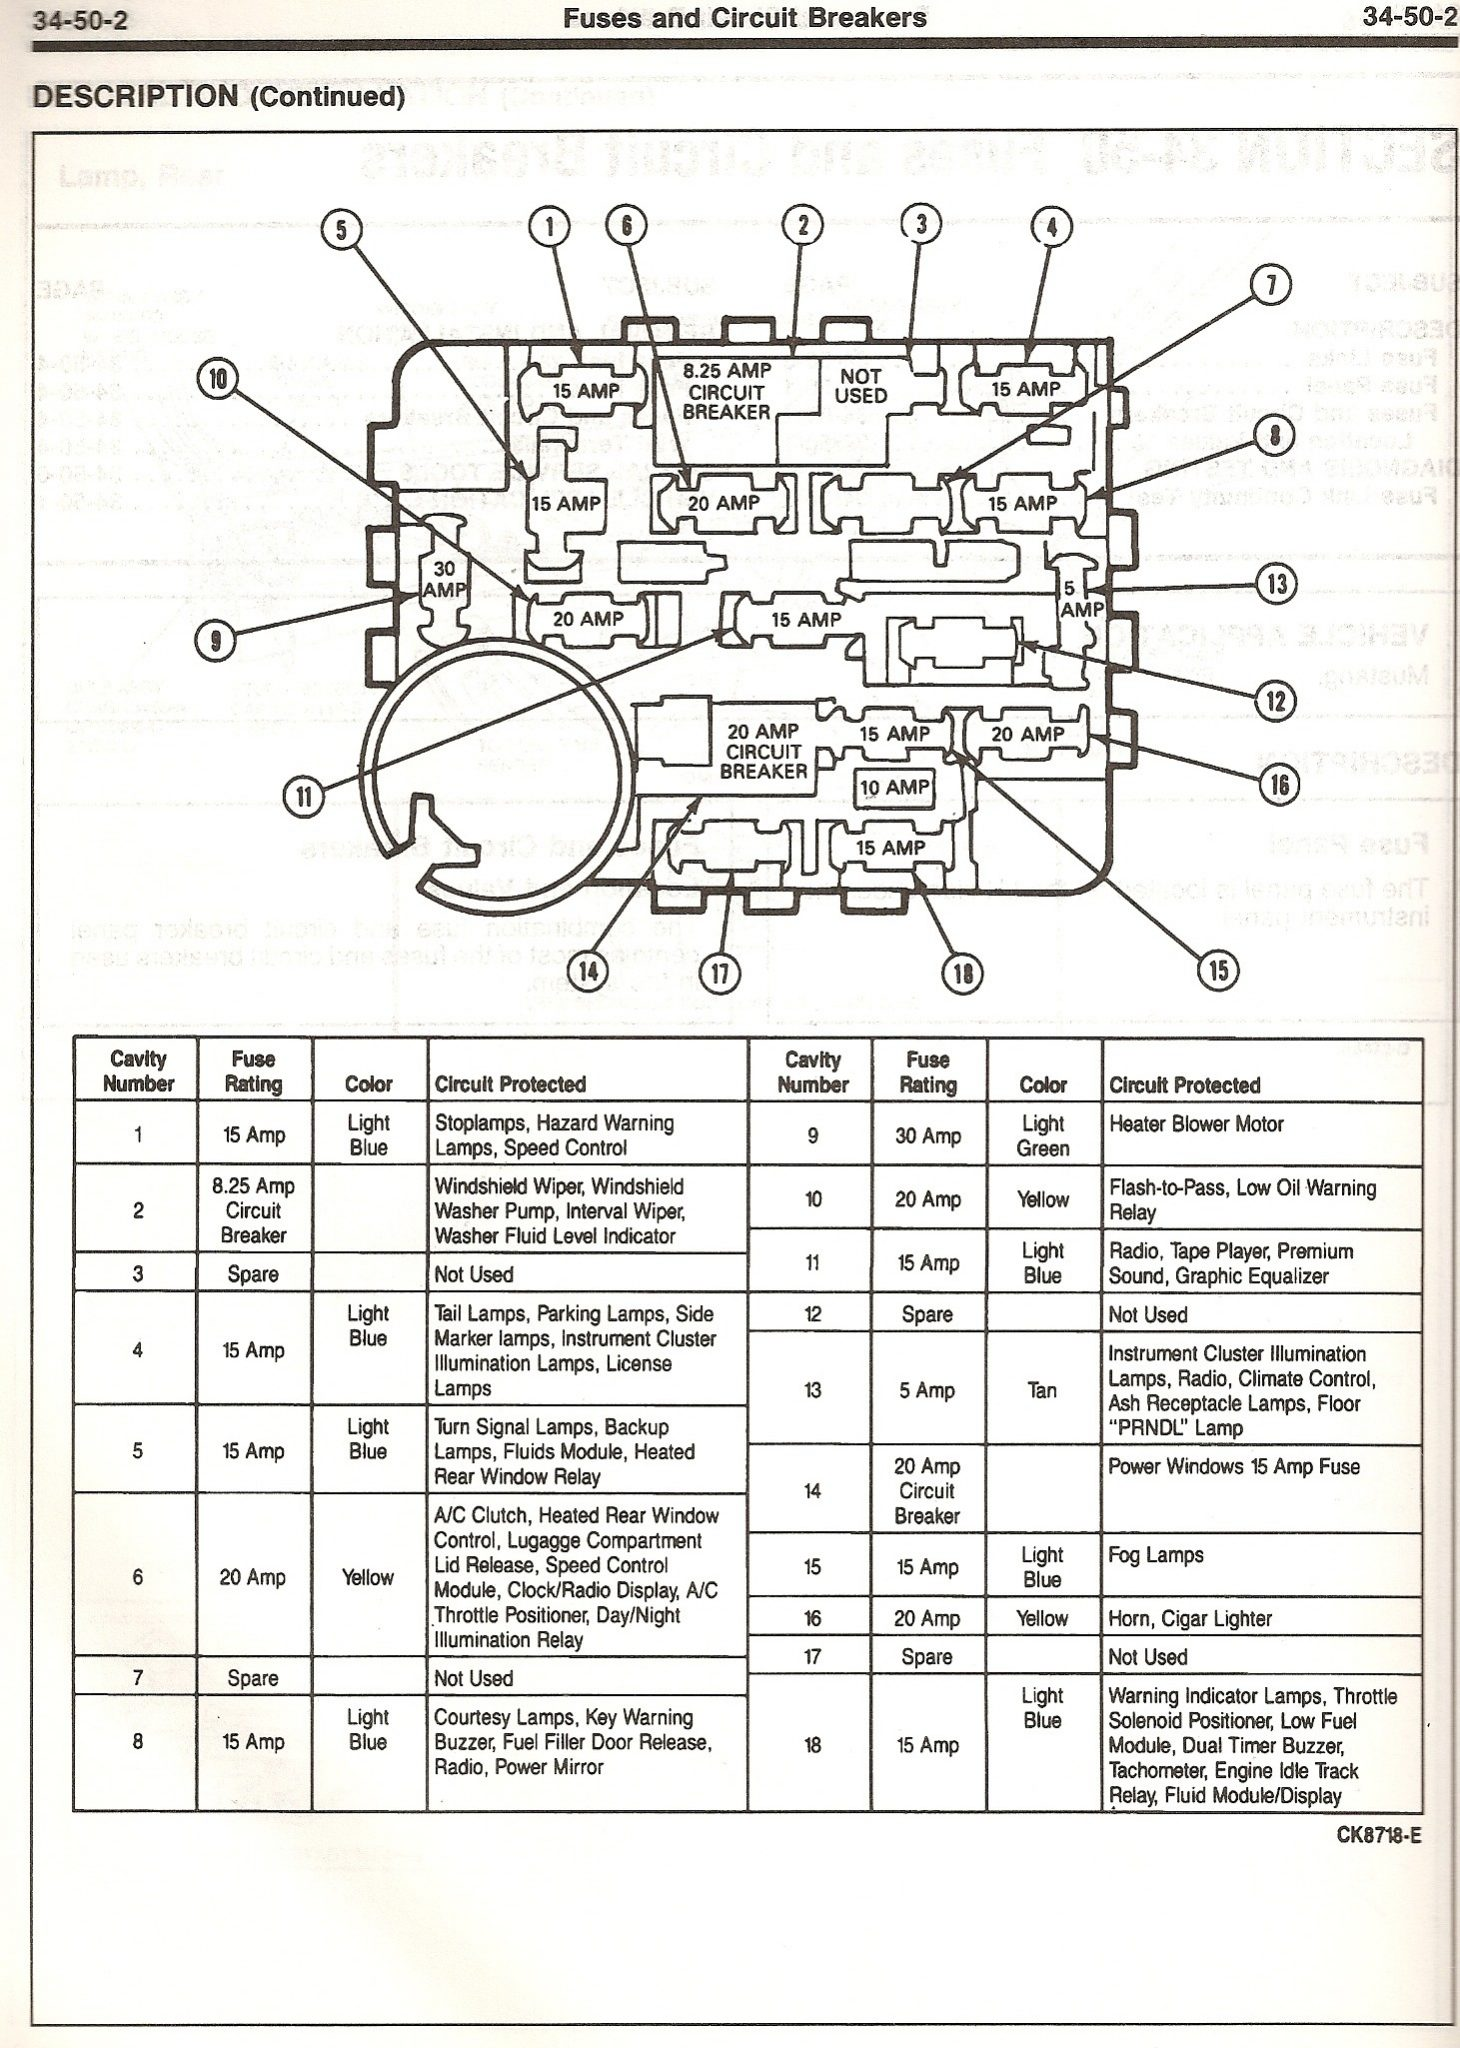 93 Pontiac Sunbird Starter Location moreover 1993 Pontiac Sunbird Engine Diagram together with 2qu1q Replace Master Cylinder Abs 85 Lincoln Mark 7 also RepairGuideContent in addition Pontiac Sunbird Engine Diagram. on 1991 pontiac sunbird fuse box diagram